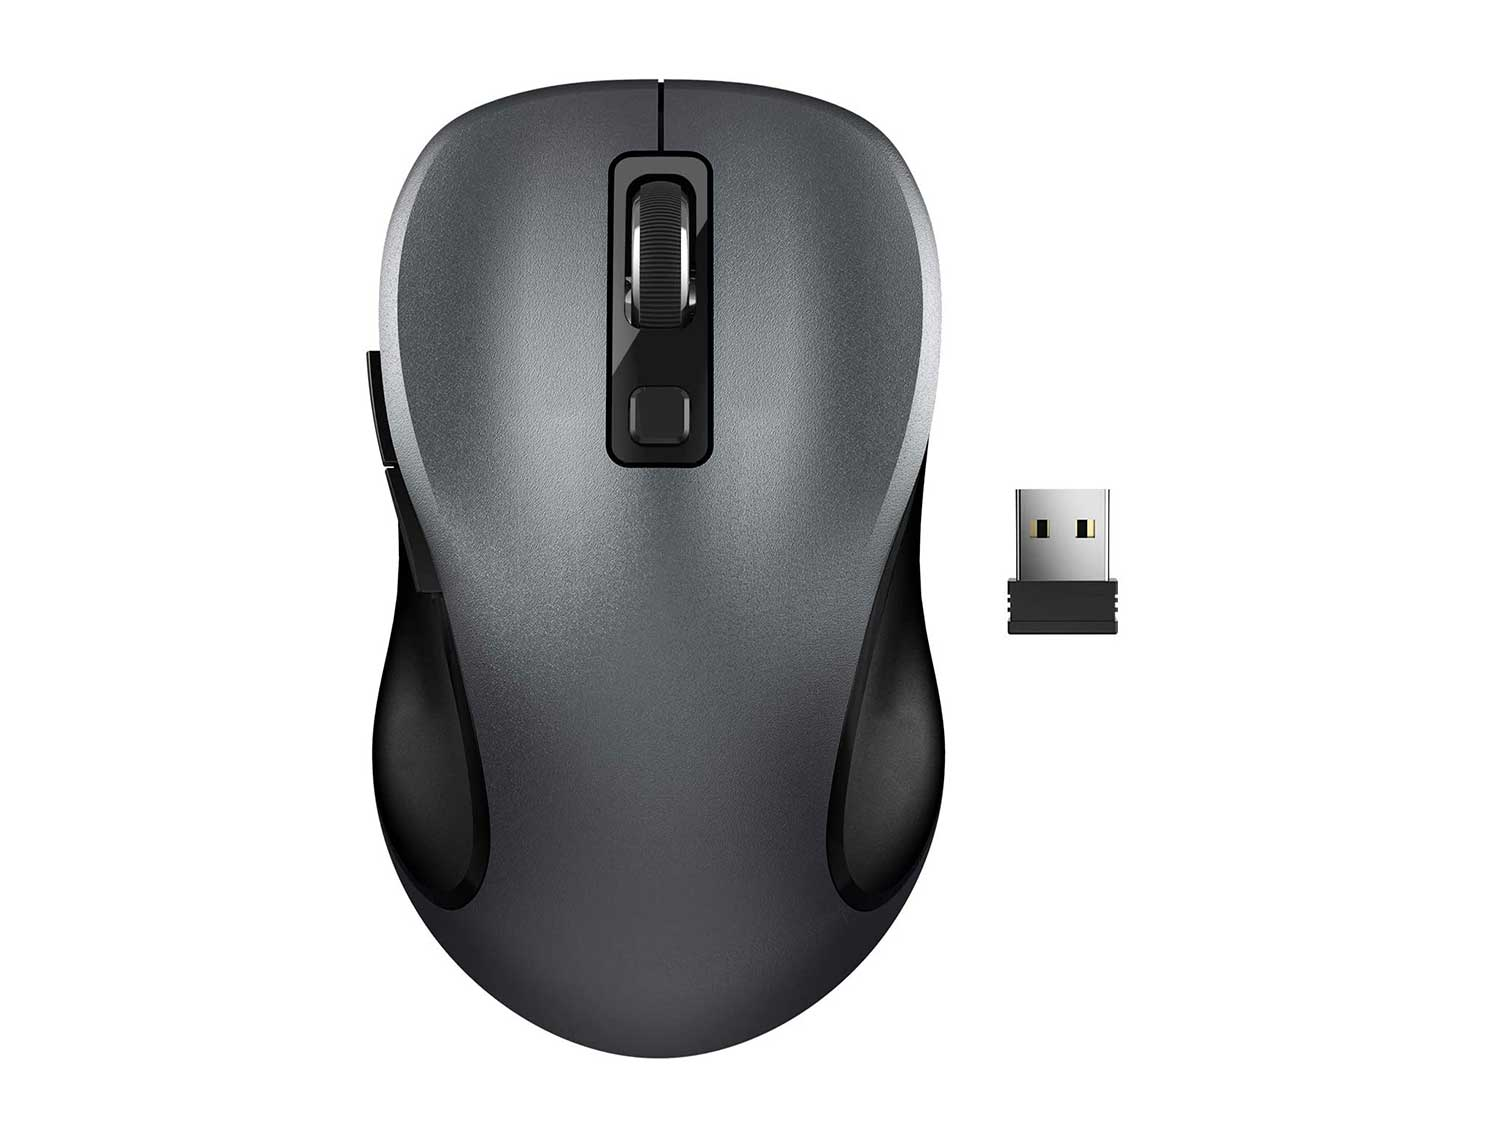 Wireless Mouse, RATEL 2.4G Wireless Ergonomic Mouse Computer Mouse Laptop Mouse USB Mouse 6 Buttons with Nano Receiver 3 Adjustable DPI Levels Cordless Wireless Mice for